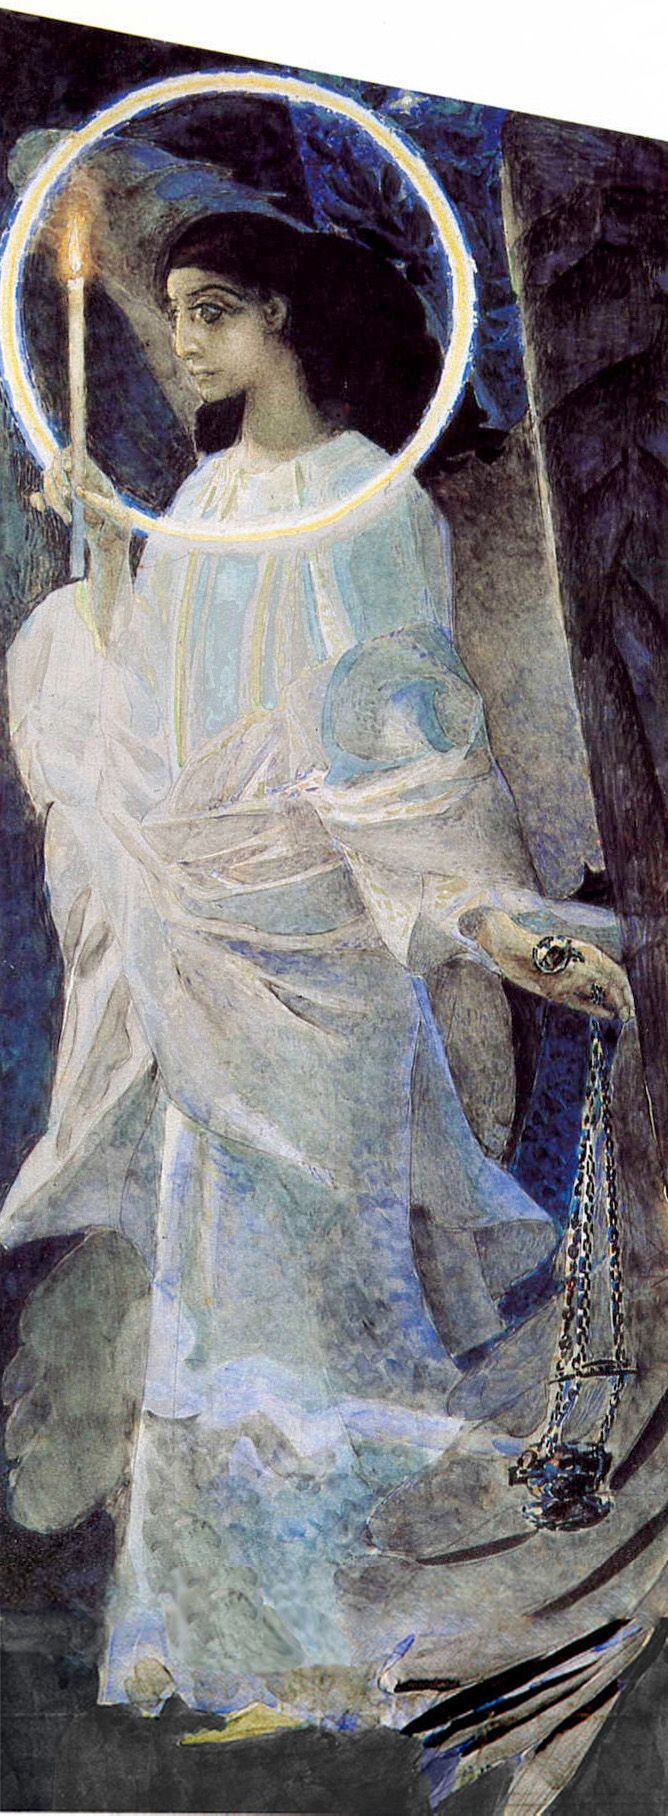 Михаил Врубель.     Ангел с кадилом и свечой.    Mikhail Vrubel.    Angel with censer and candle.